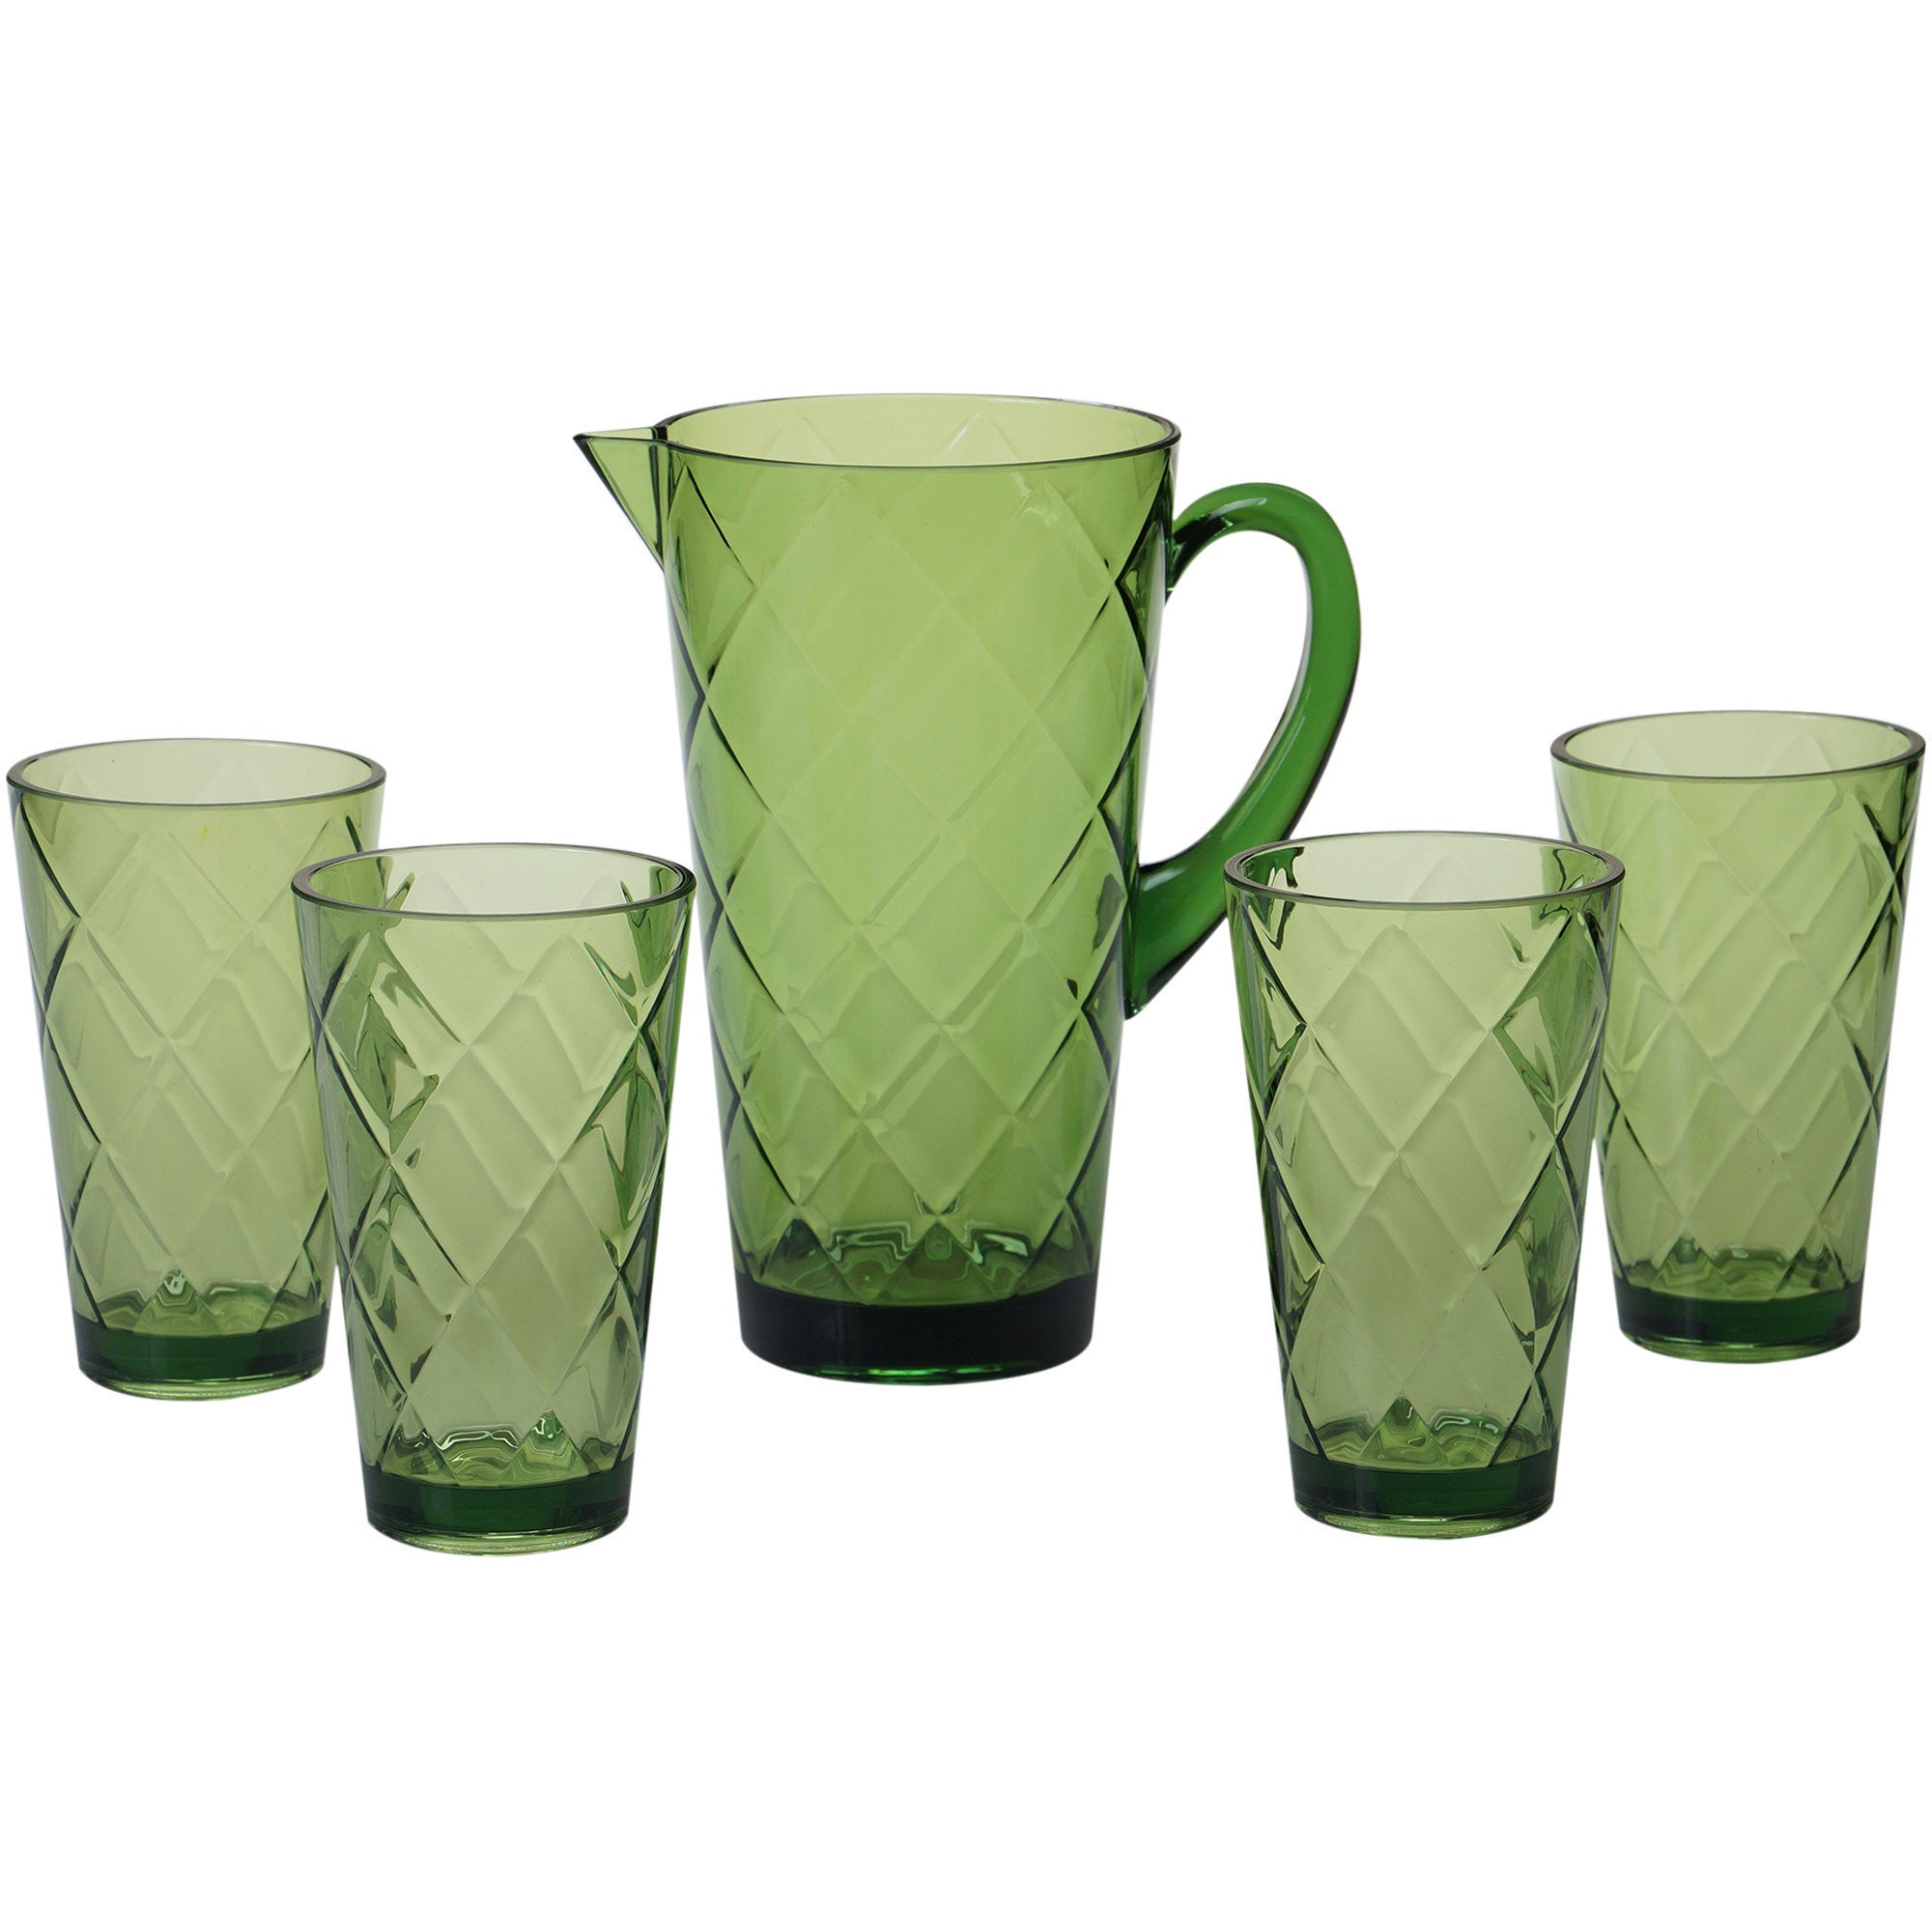 Certified International Green Diamond Acrylic Drinkware Pack Of 5 Overstock 14174139